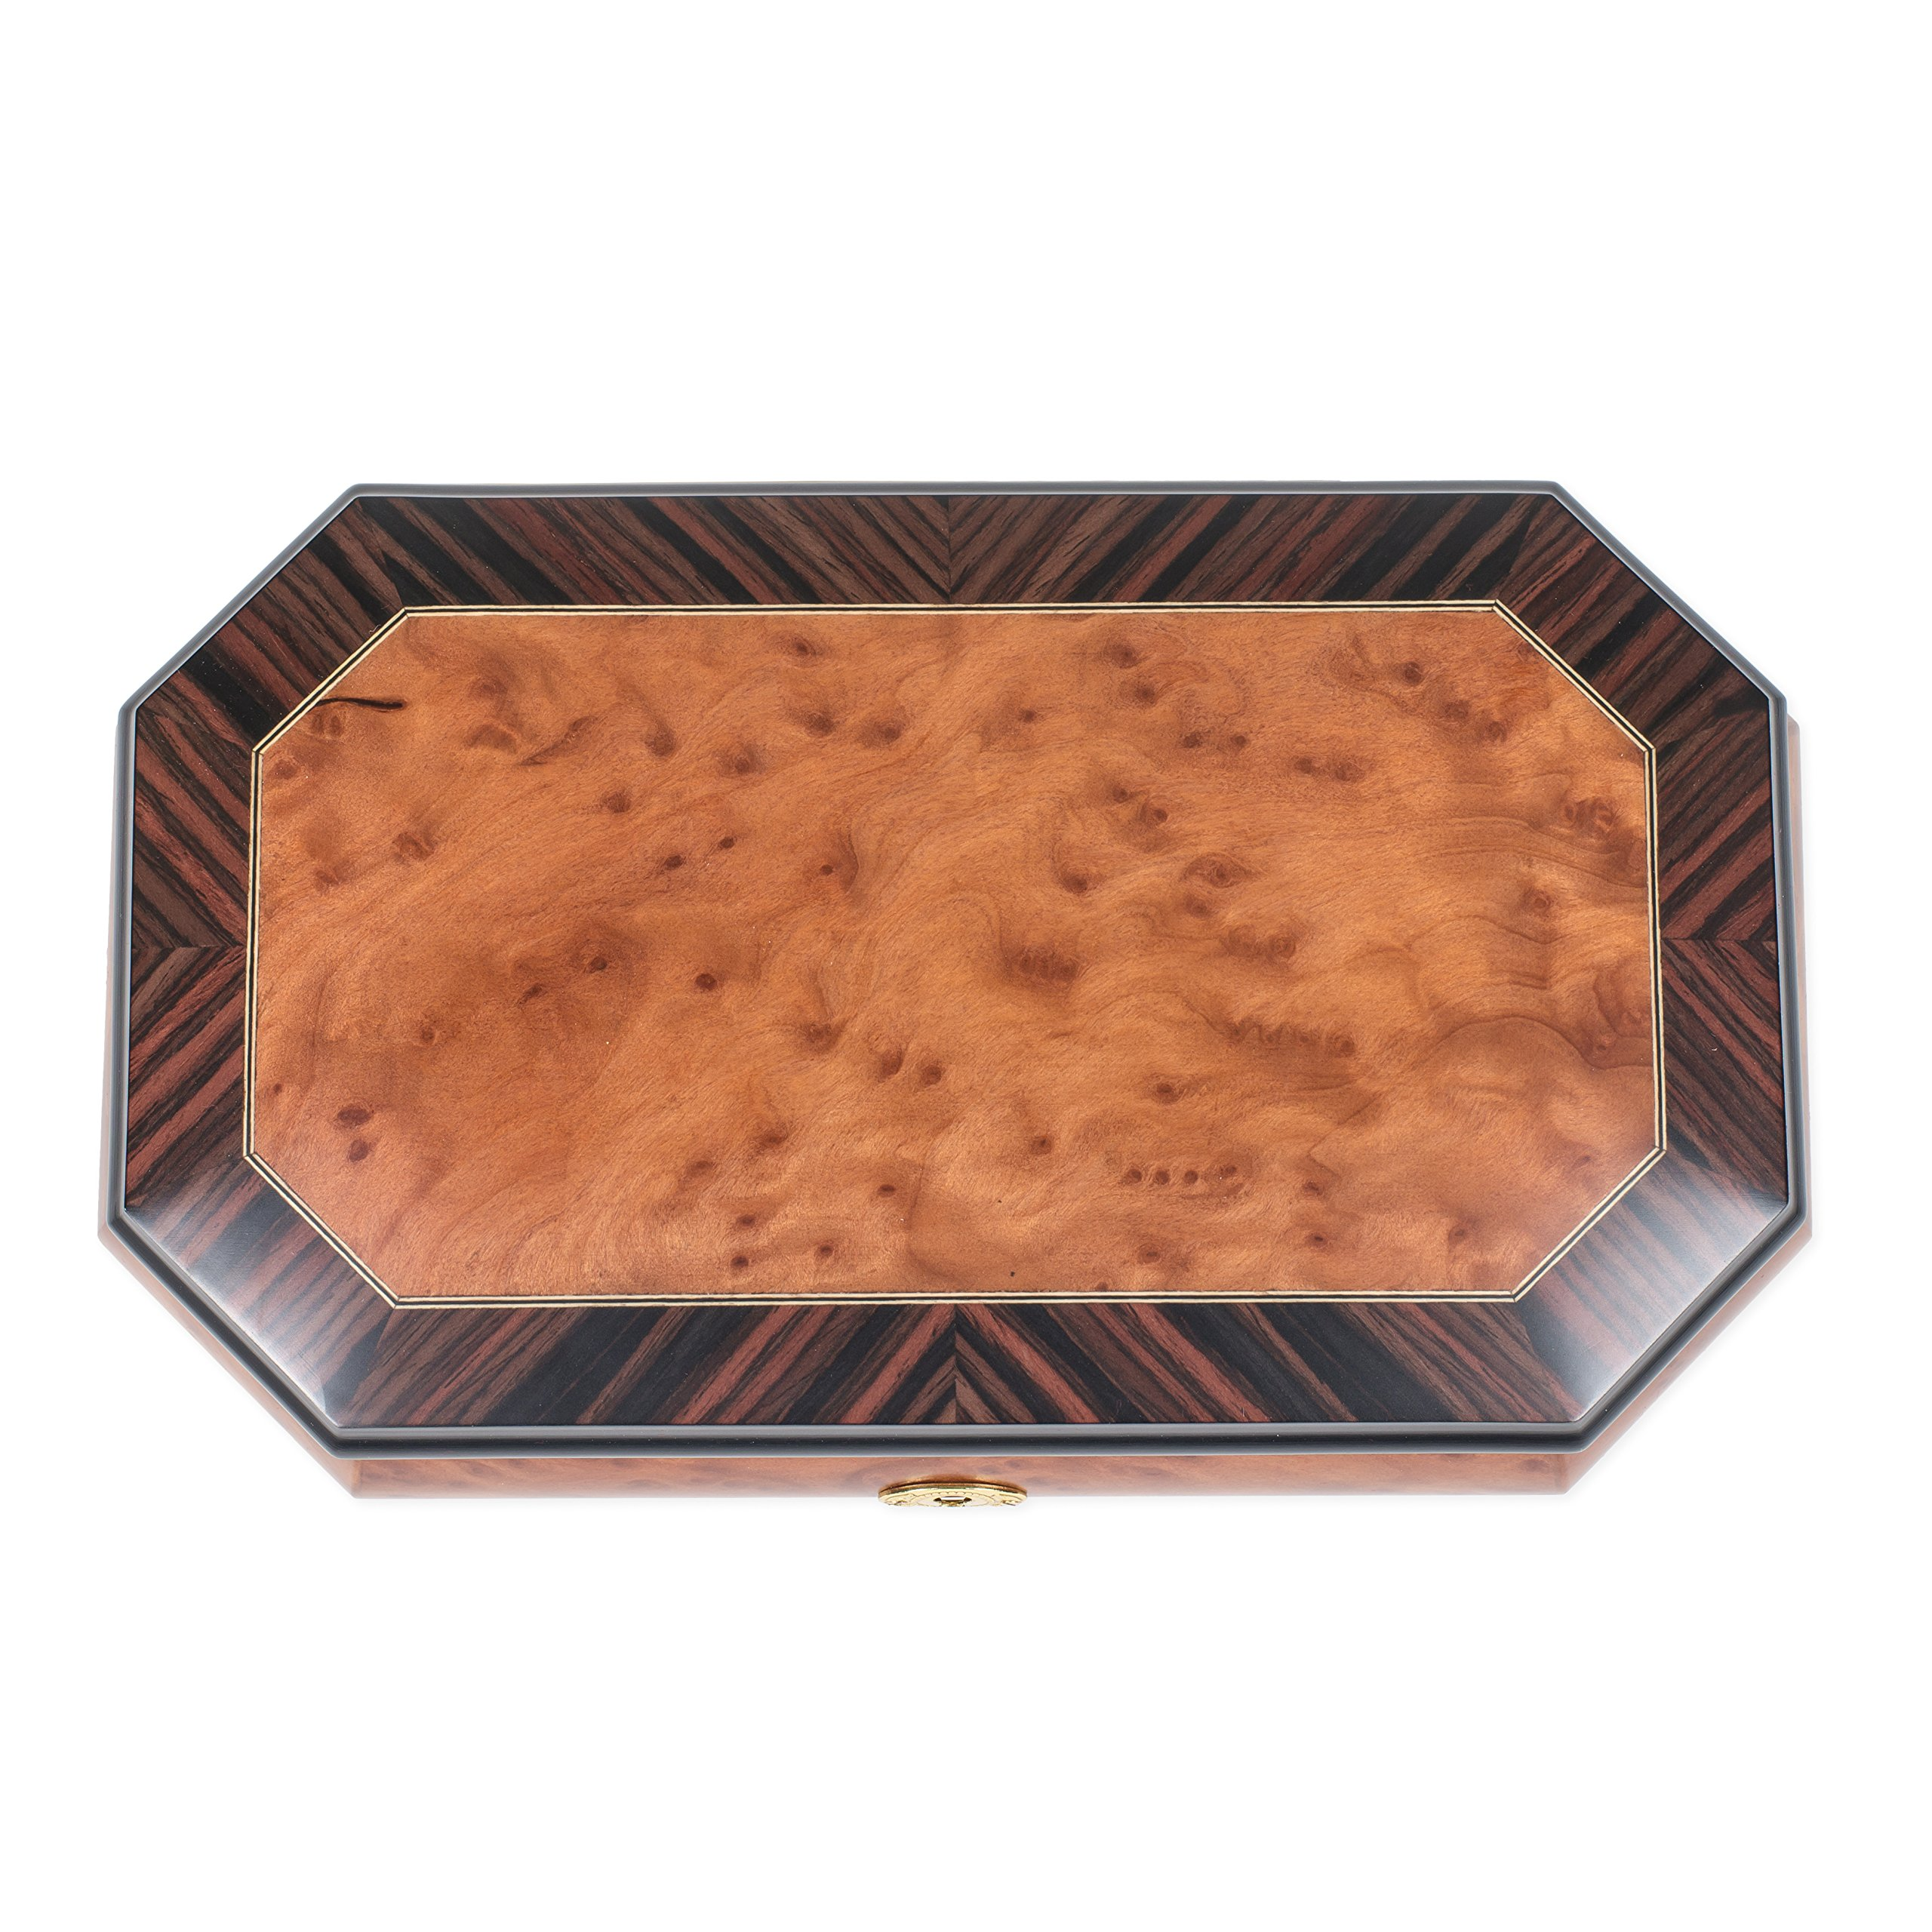 Two Wood Italian Hand Crafted Inlay Trunk Style Music Box Plays Magic Flute by Splendid Music Box Co. (Image #3)